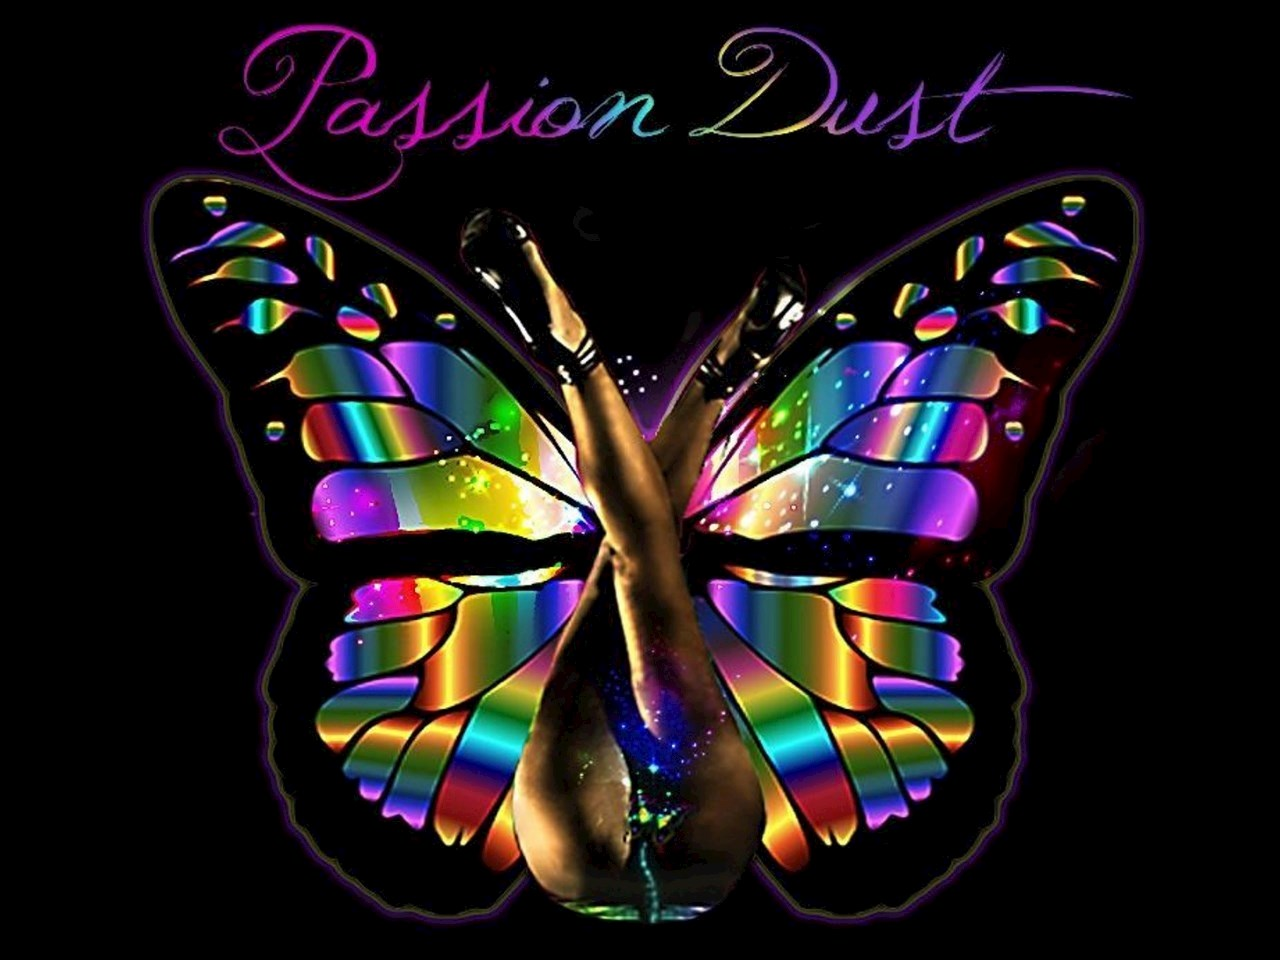 Passion Dust Intimacy Capsules are an adult novelty item